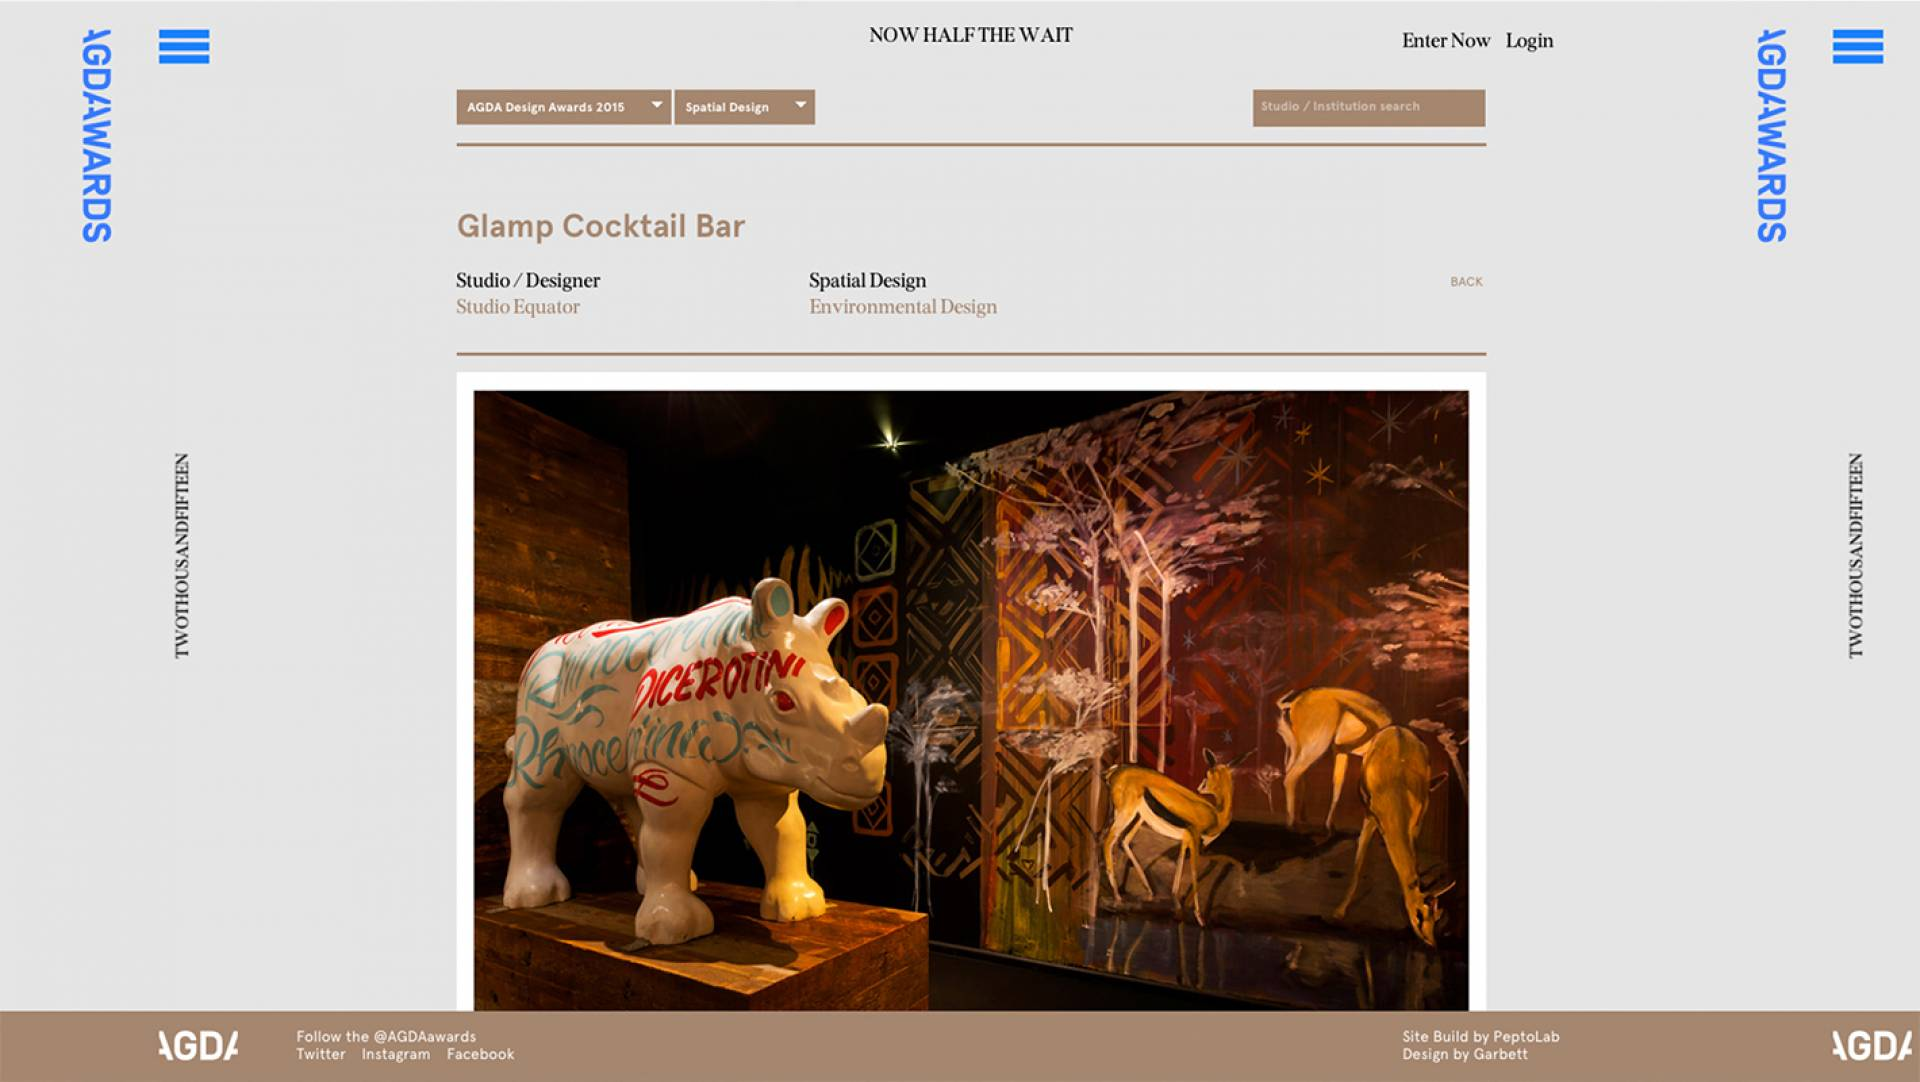 AGDA Awards 2015 Finalists Spatial Design-Glamp Cocktail Bar